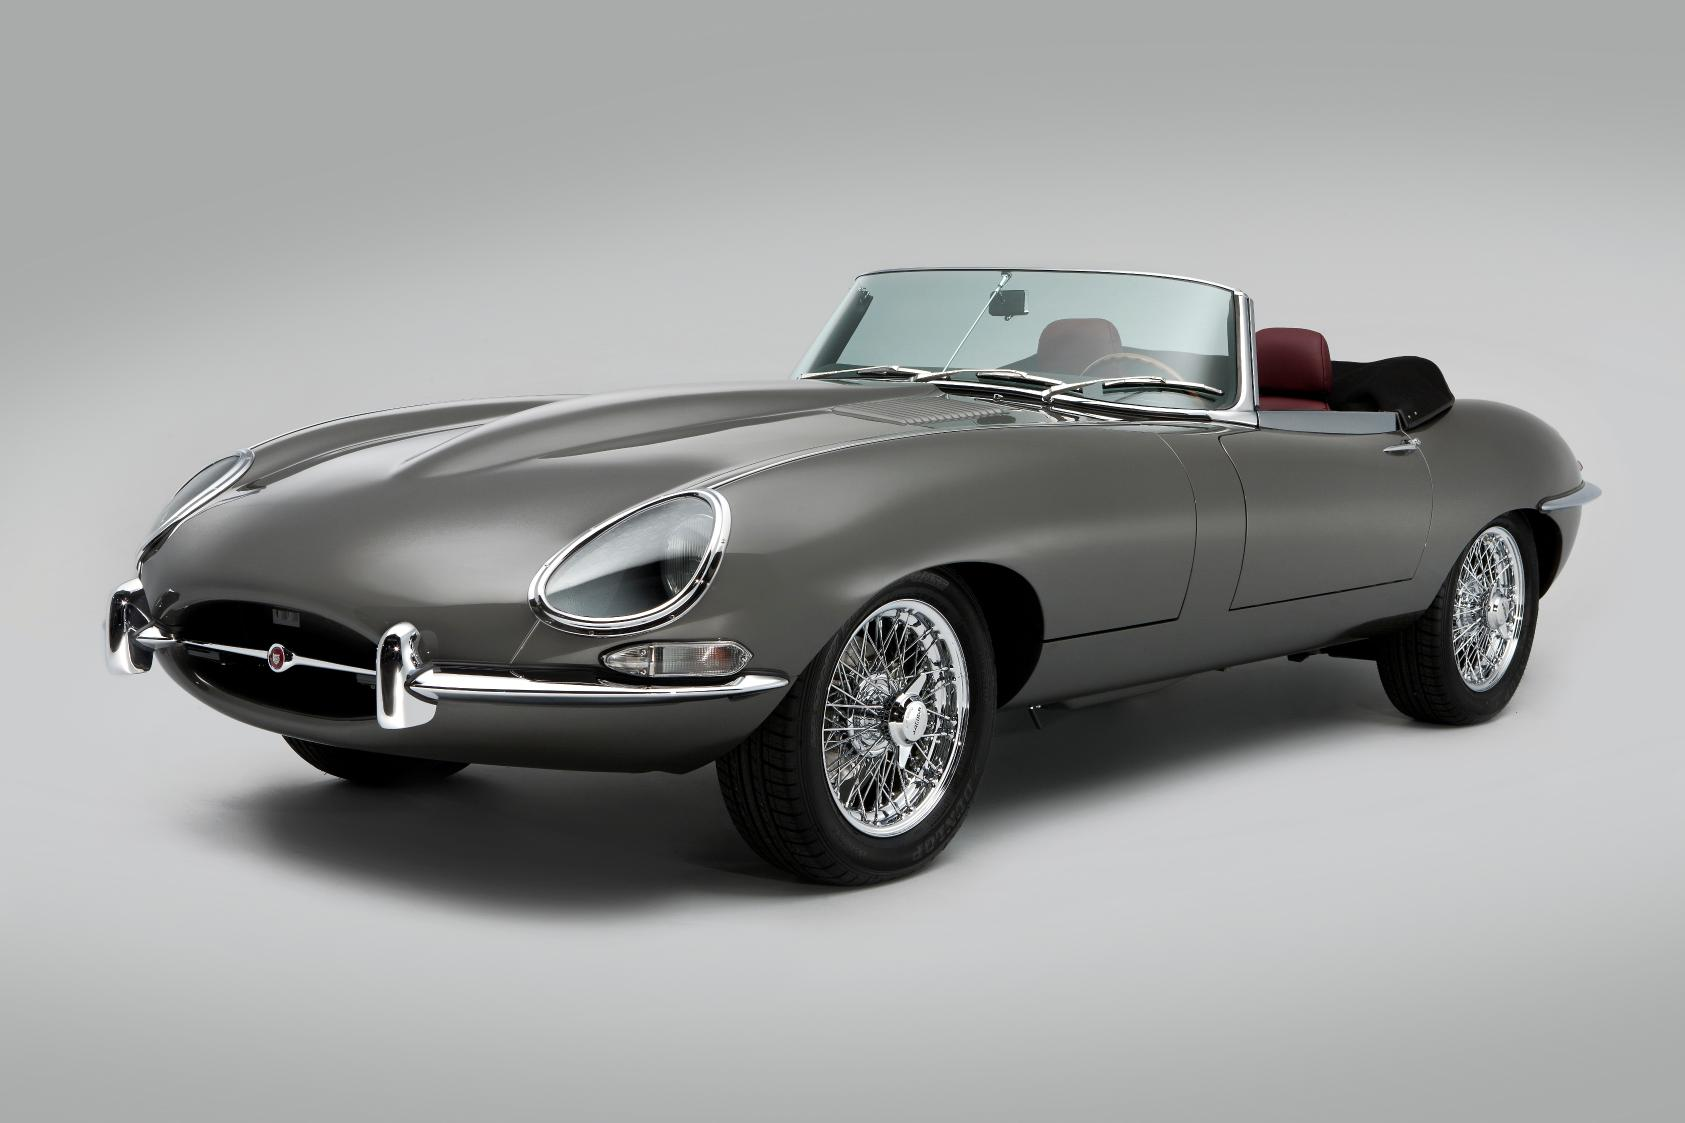 classic motor cars unveils unique jaguar e type autoevolution. Black Bedroom Furniture Sets. Home Design Ideas